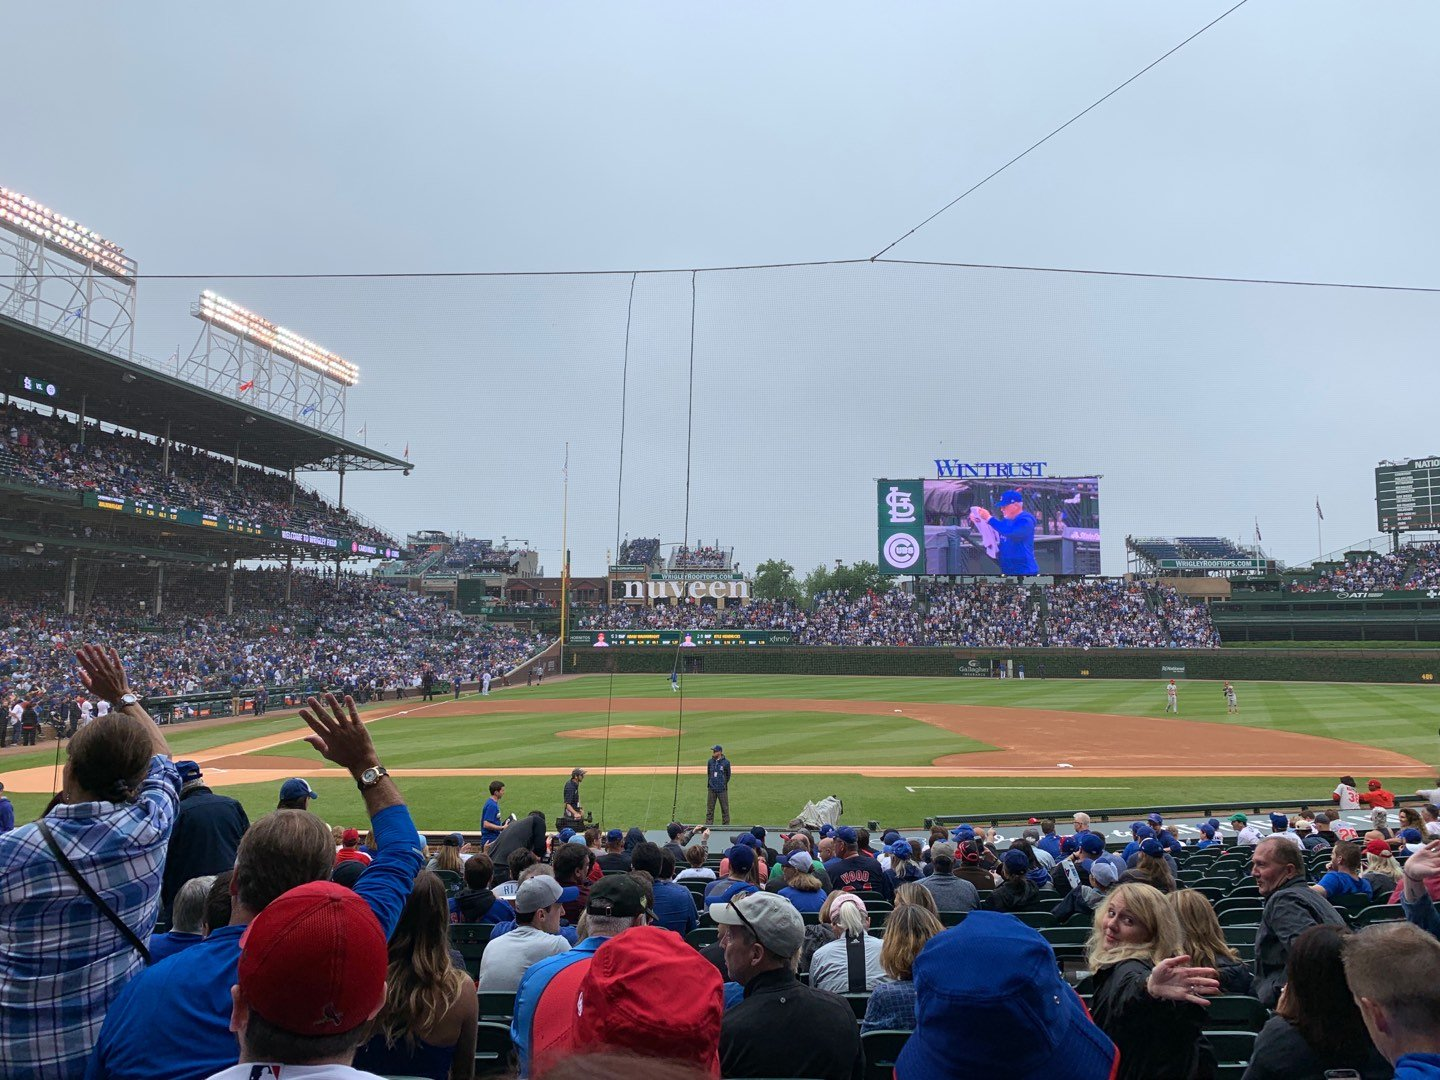 Wrigley Field Section 123 Row 7 Seat 7